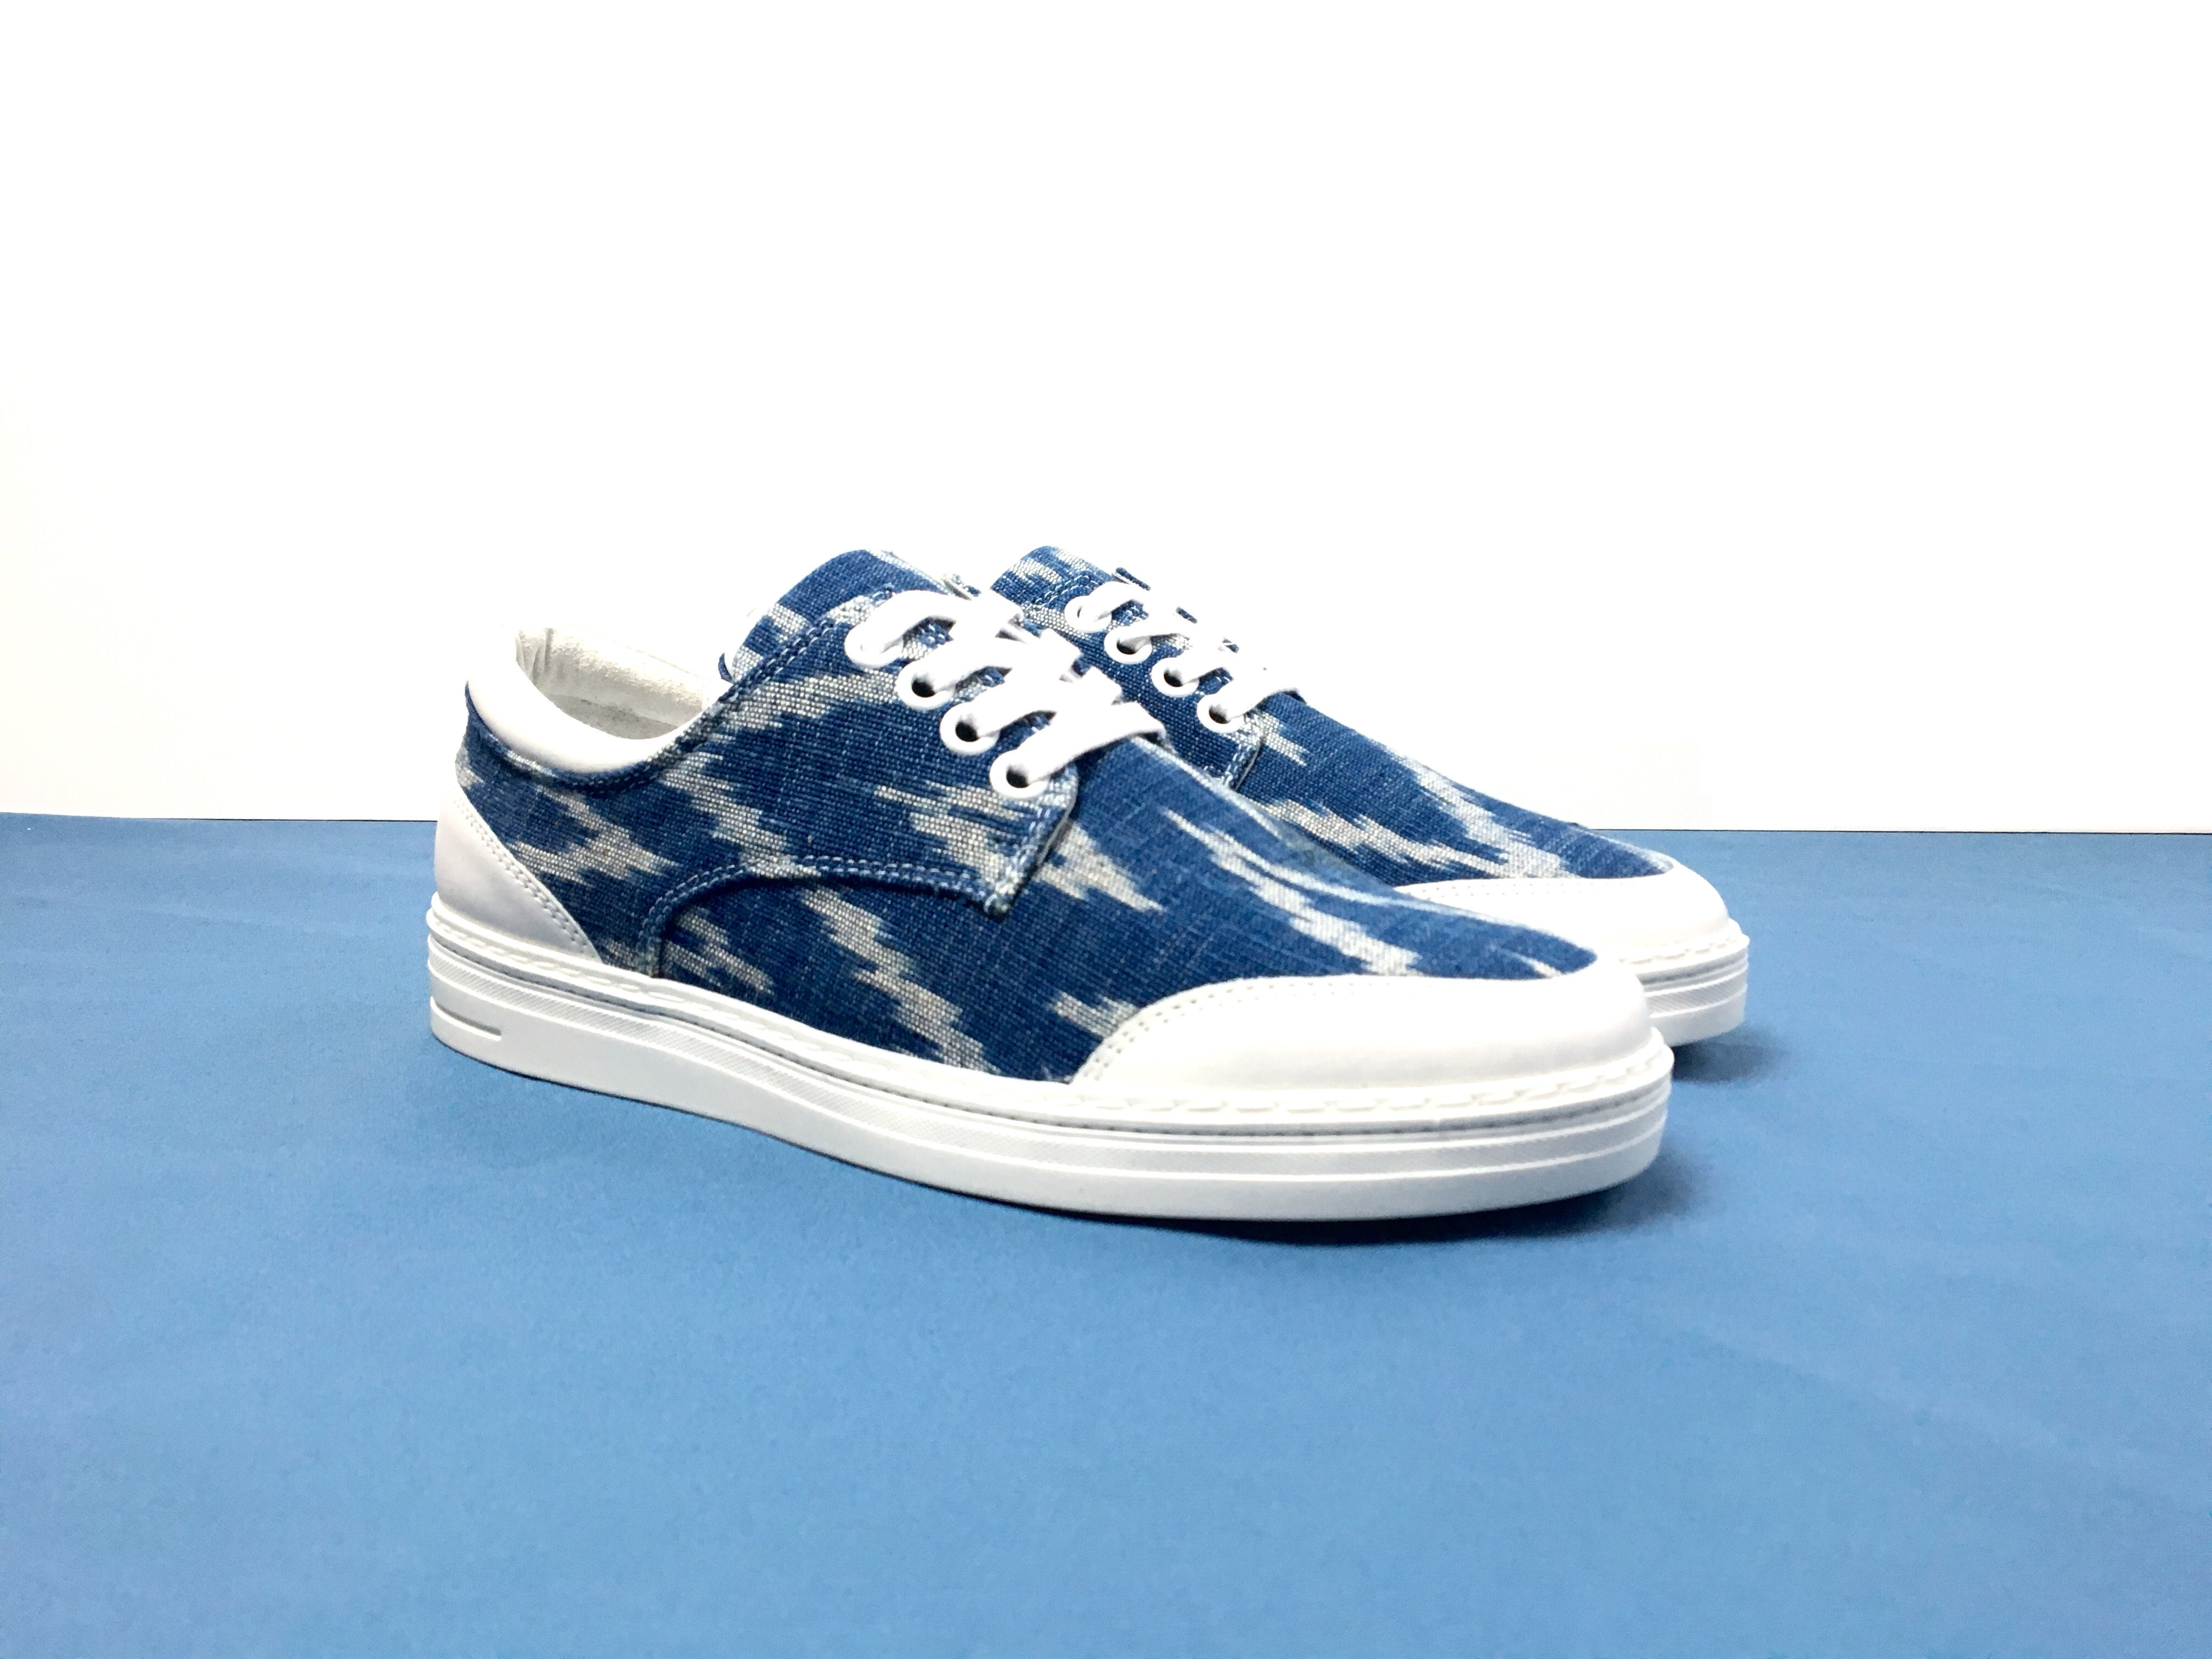 Blue Days Footwear x Indigo People (4)